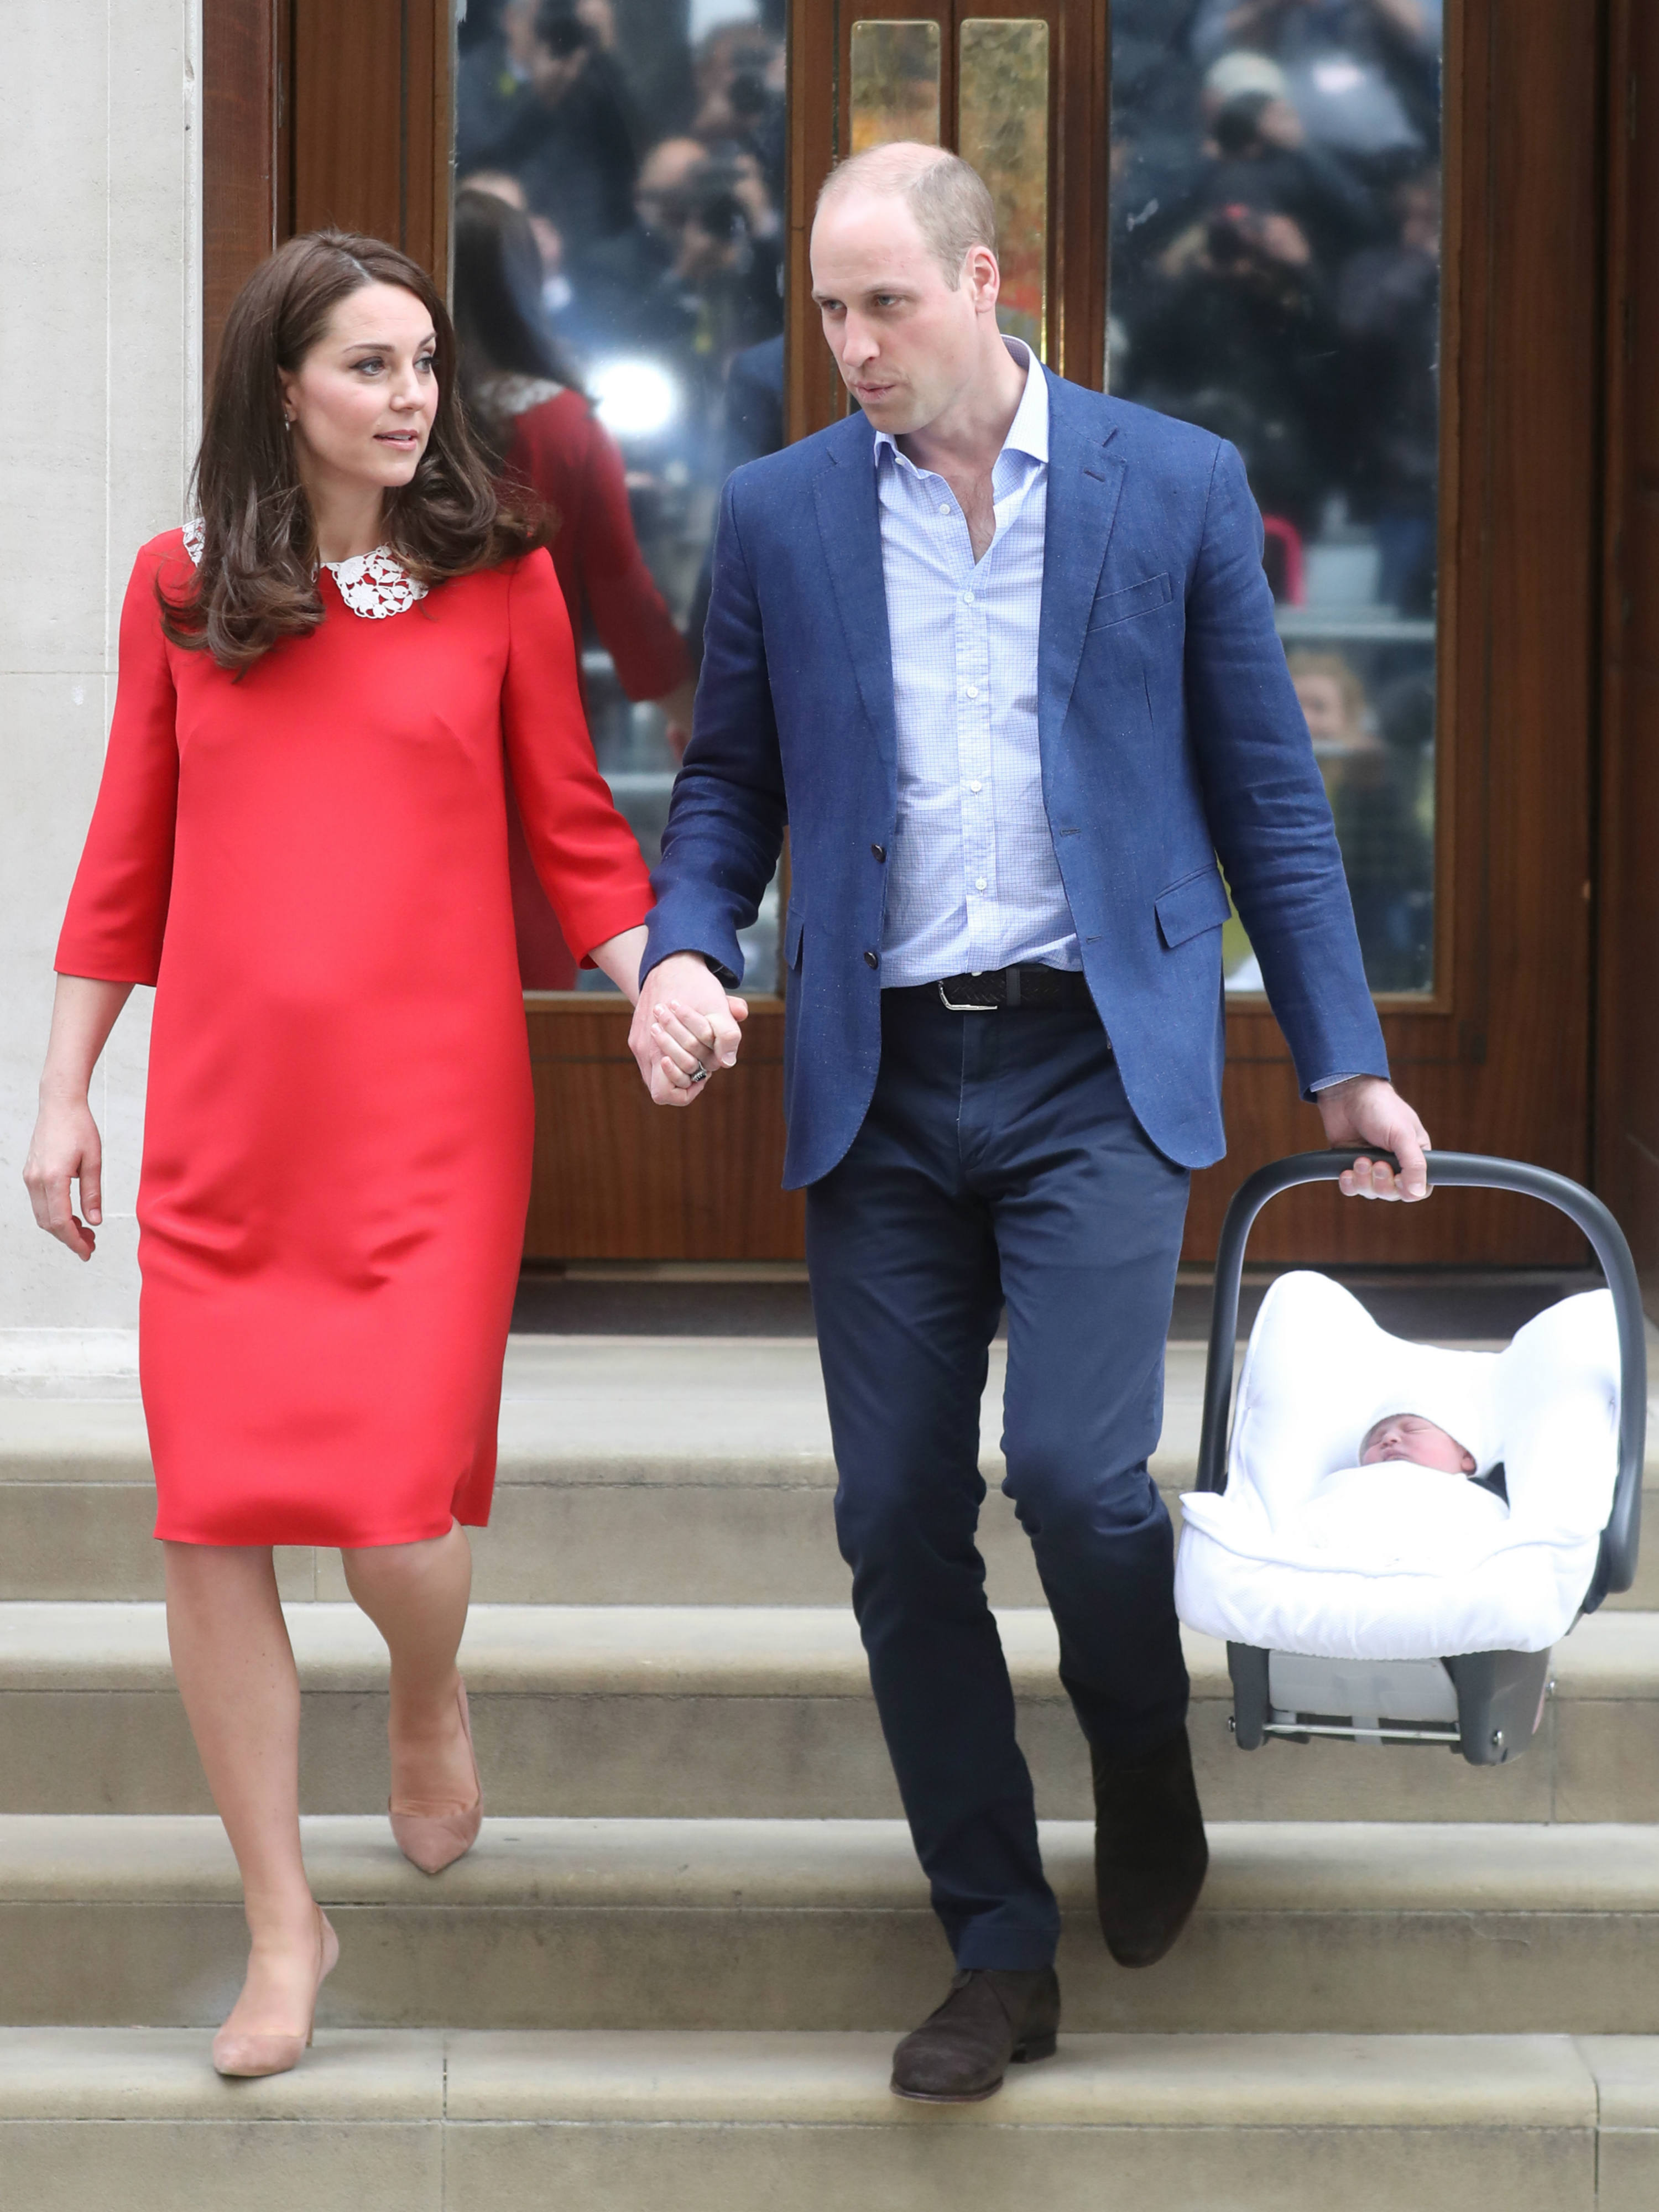 Kate Middleton and Prince William leave the hospital with the royal baby